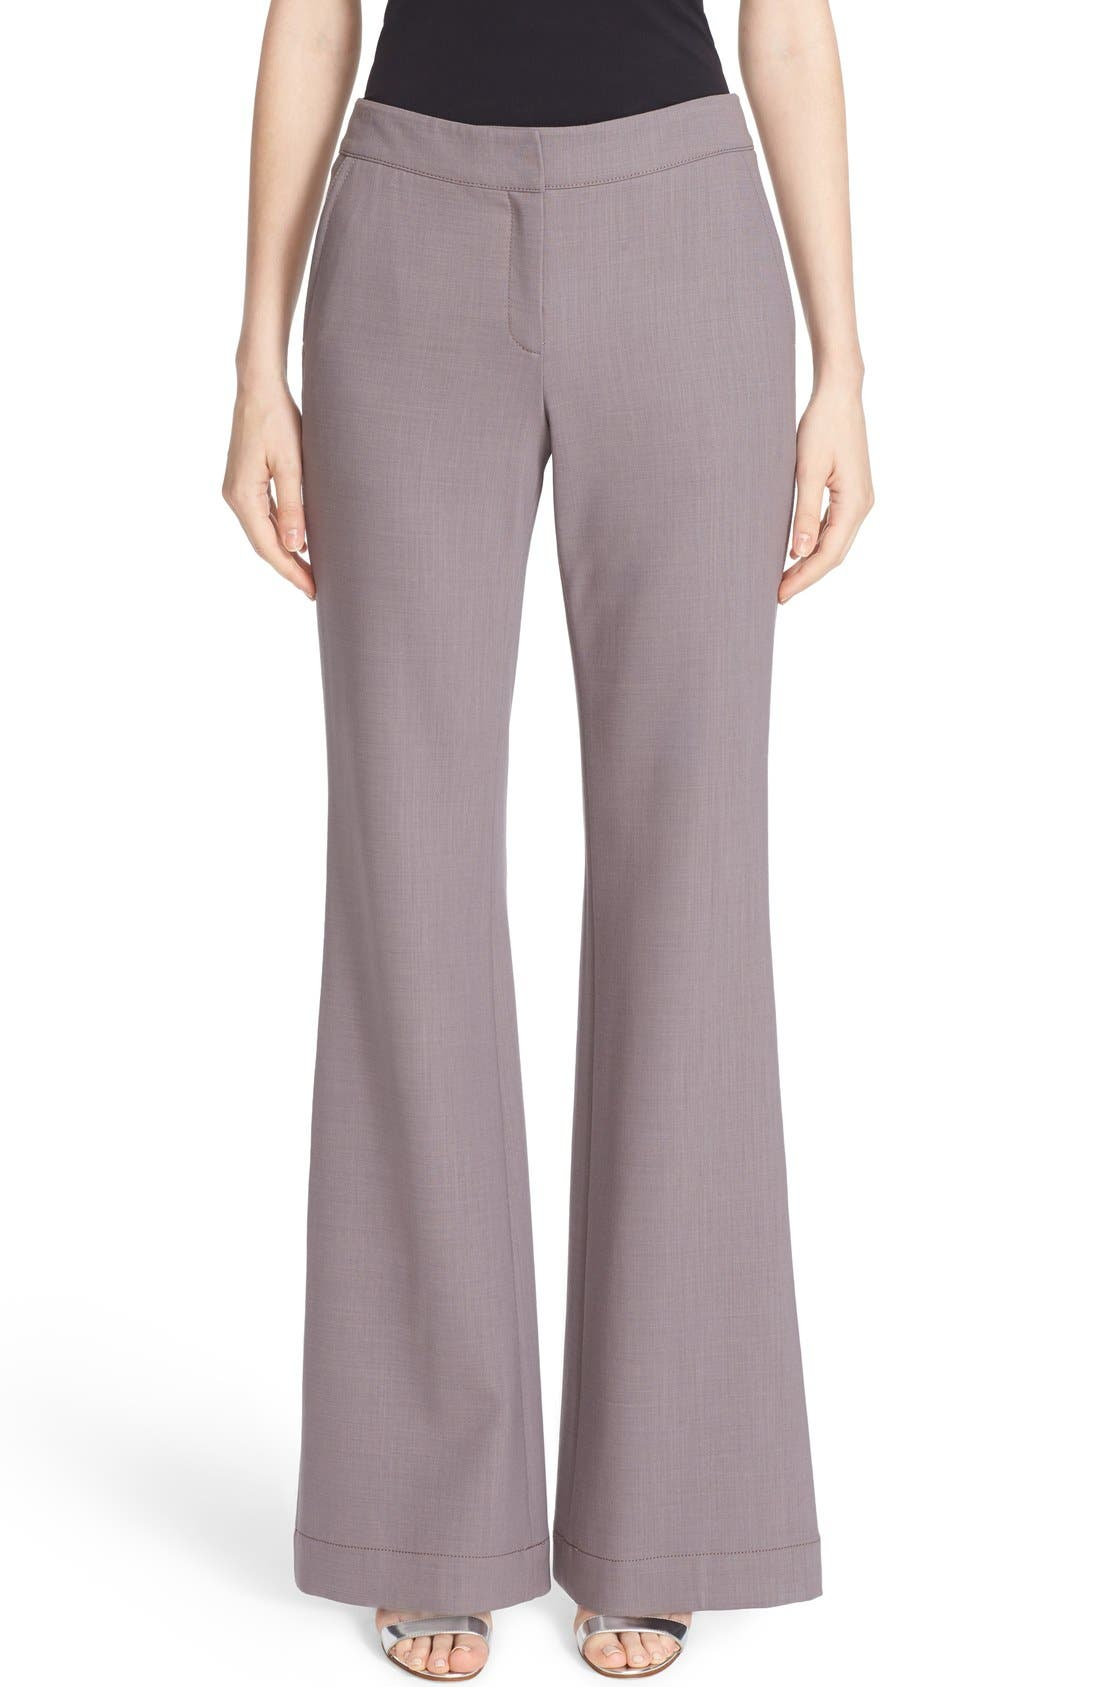 LAFAYETTE 148 NEW YORK Kenmare Stretch Wool Flare